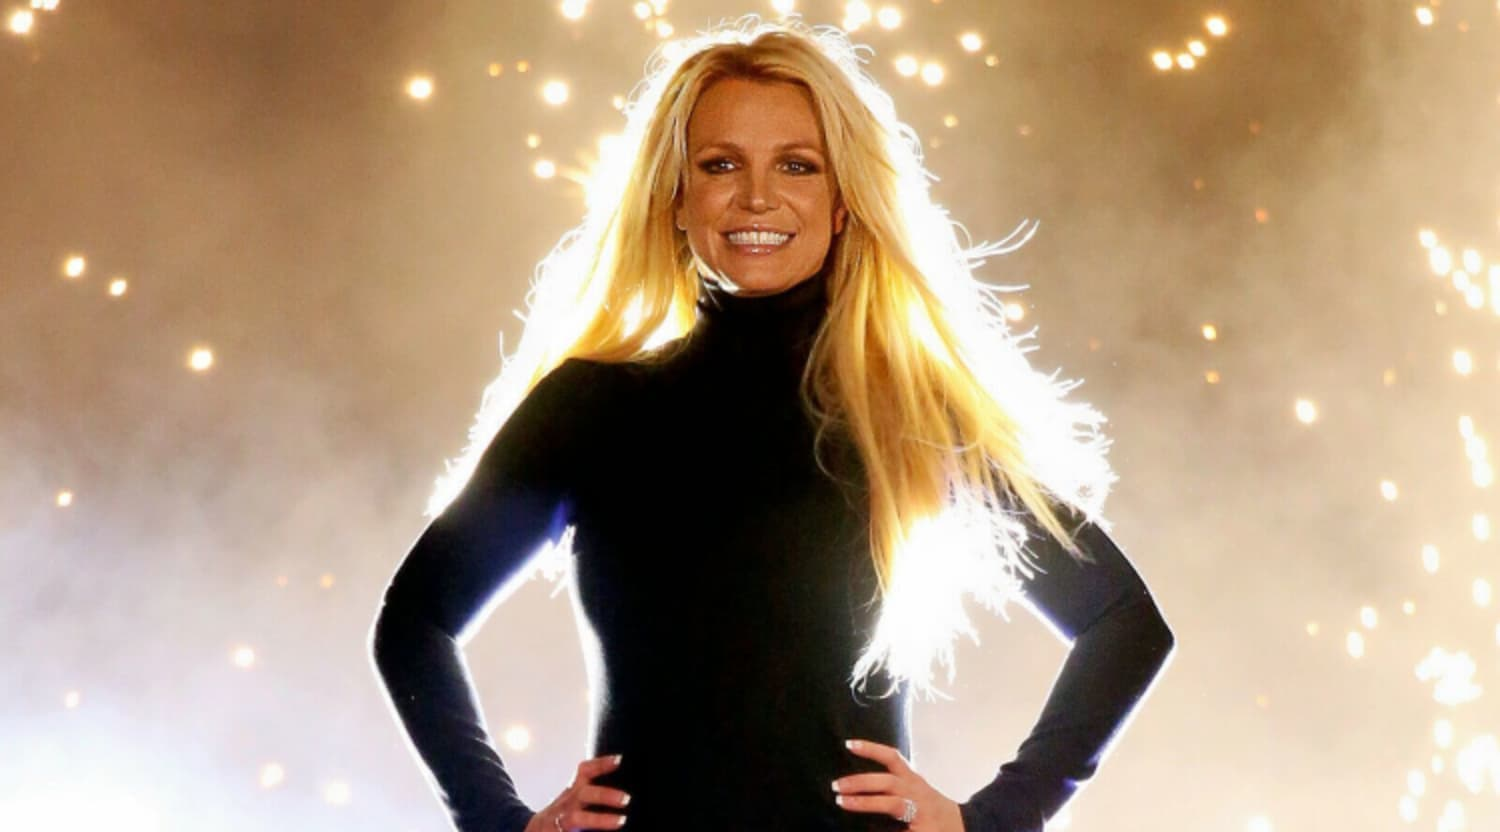 Britney Spears Tickets Britney Spears Concert Tickets And Tour Dates Stubhub